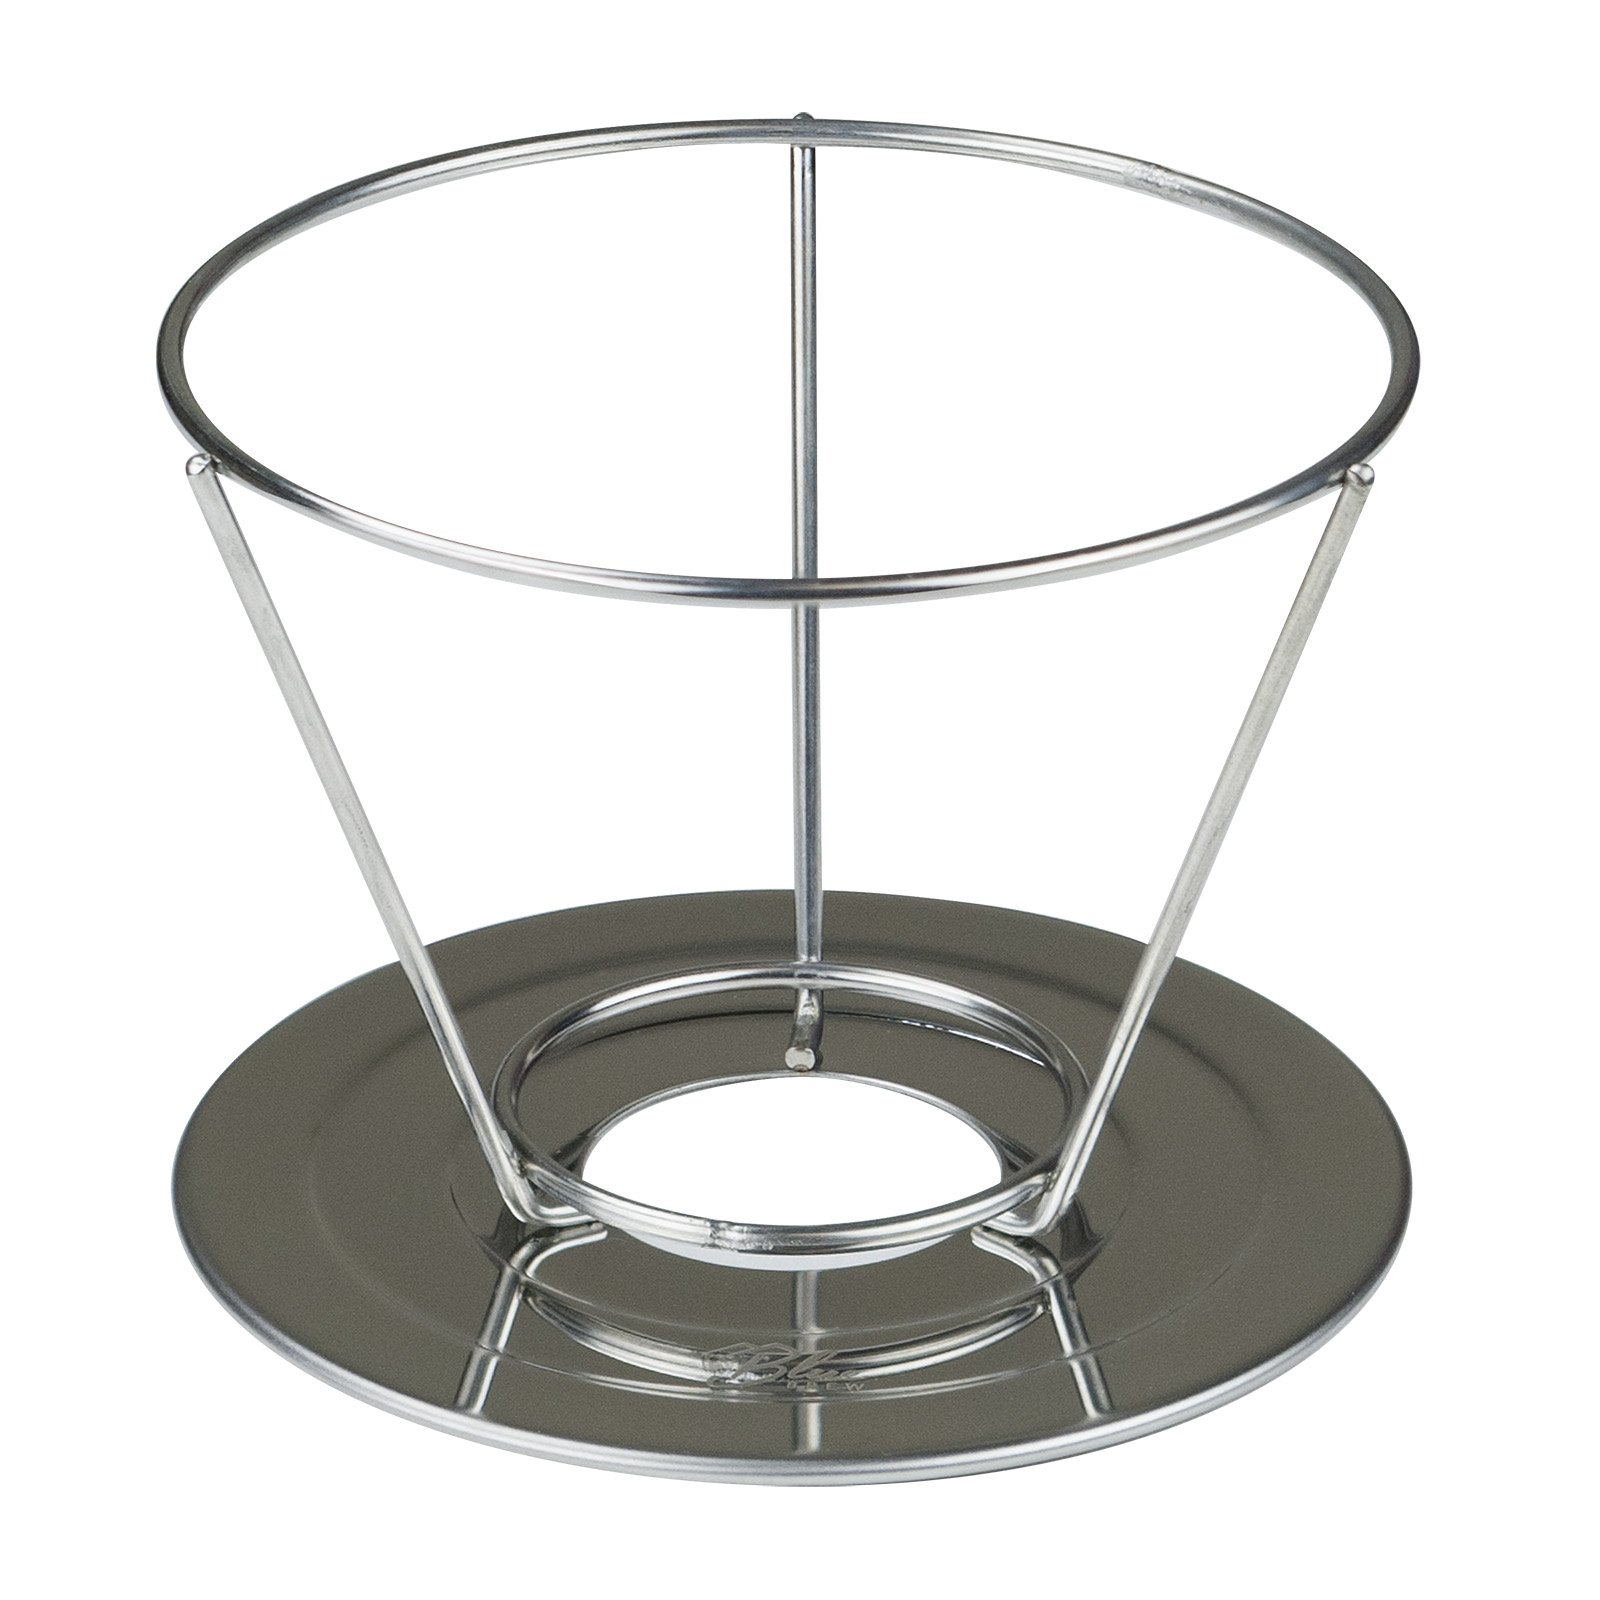 Blue Brew BB1005 Stainless Steel Double-Filtered Pour Over Coffee Dripper, with Separated Stand